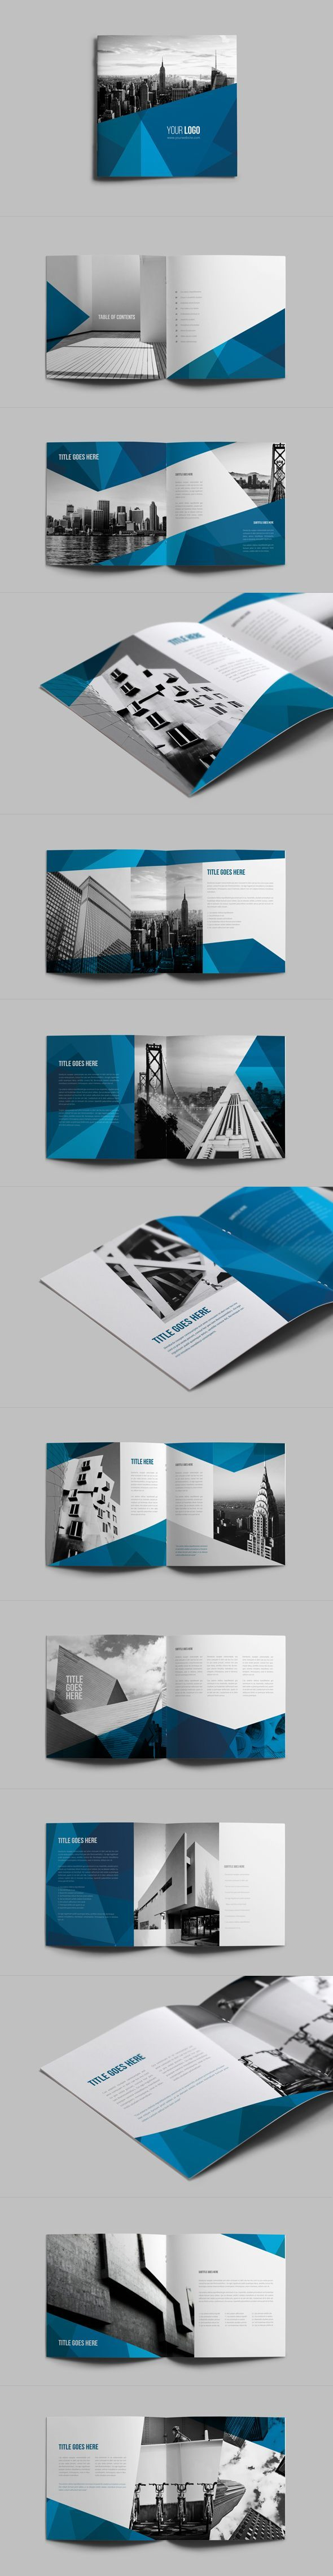 Square Abstract Architecture Brochure. Download here: http://graphicriver.net/item/square-abstract-architecture-brochure/9204539?ref=abradesign #brochure #design: